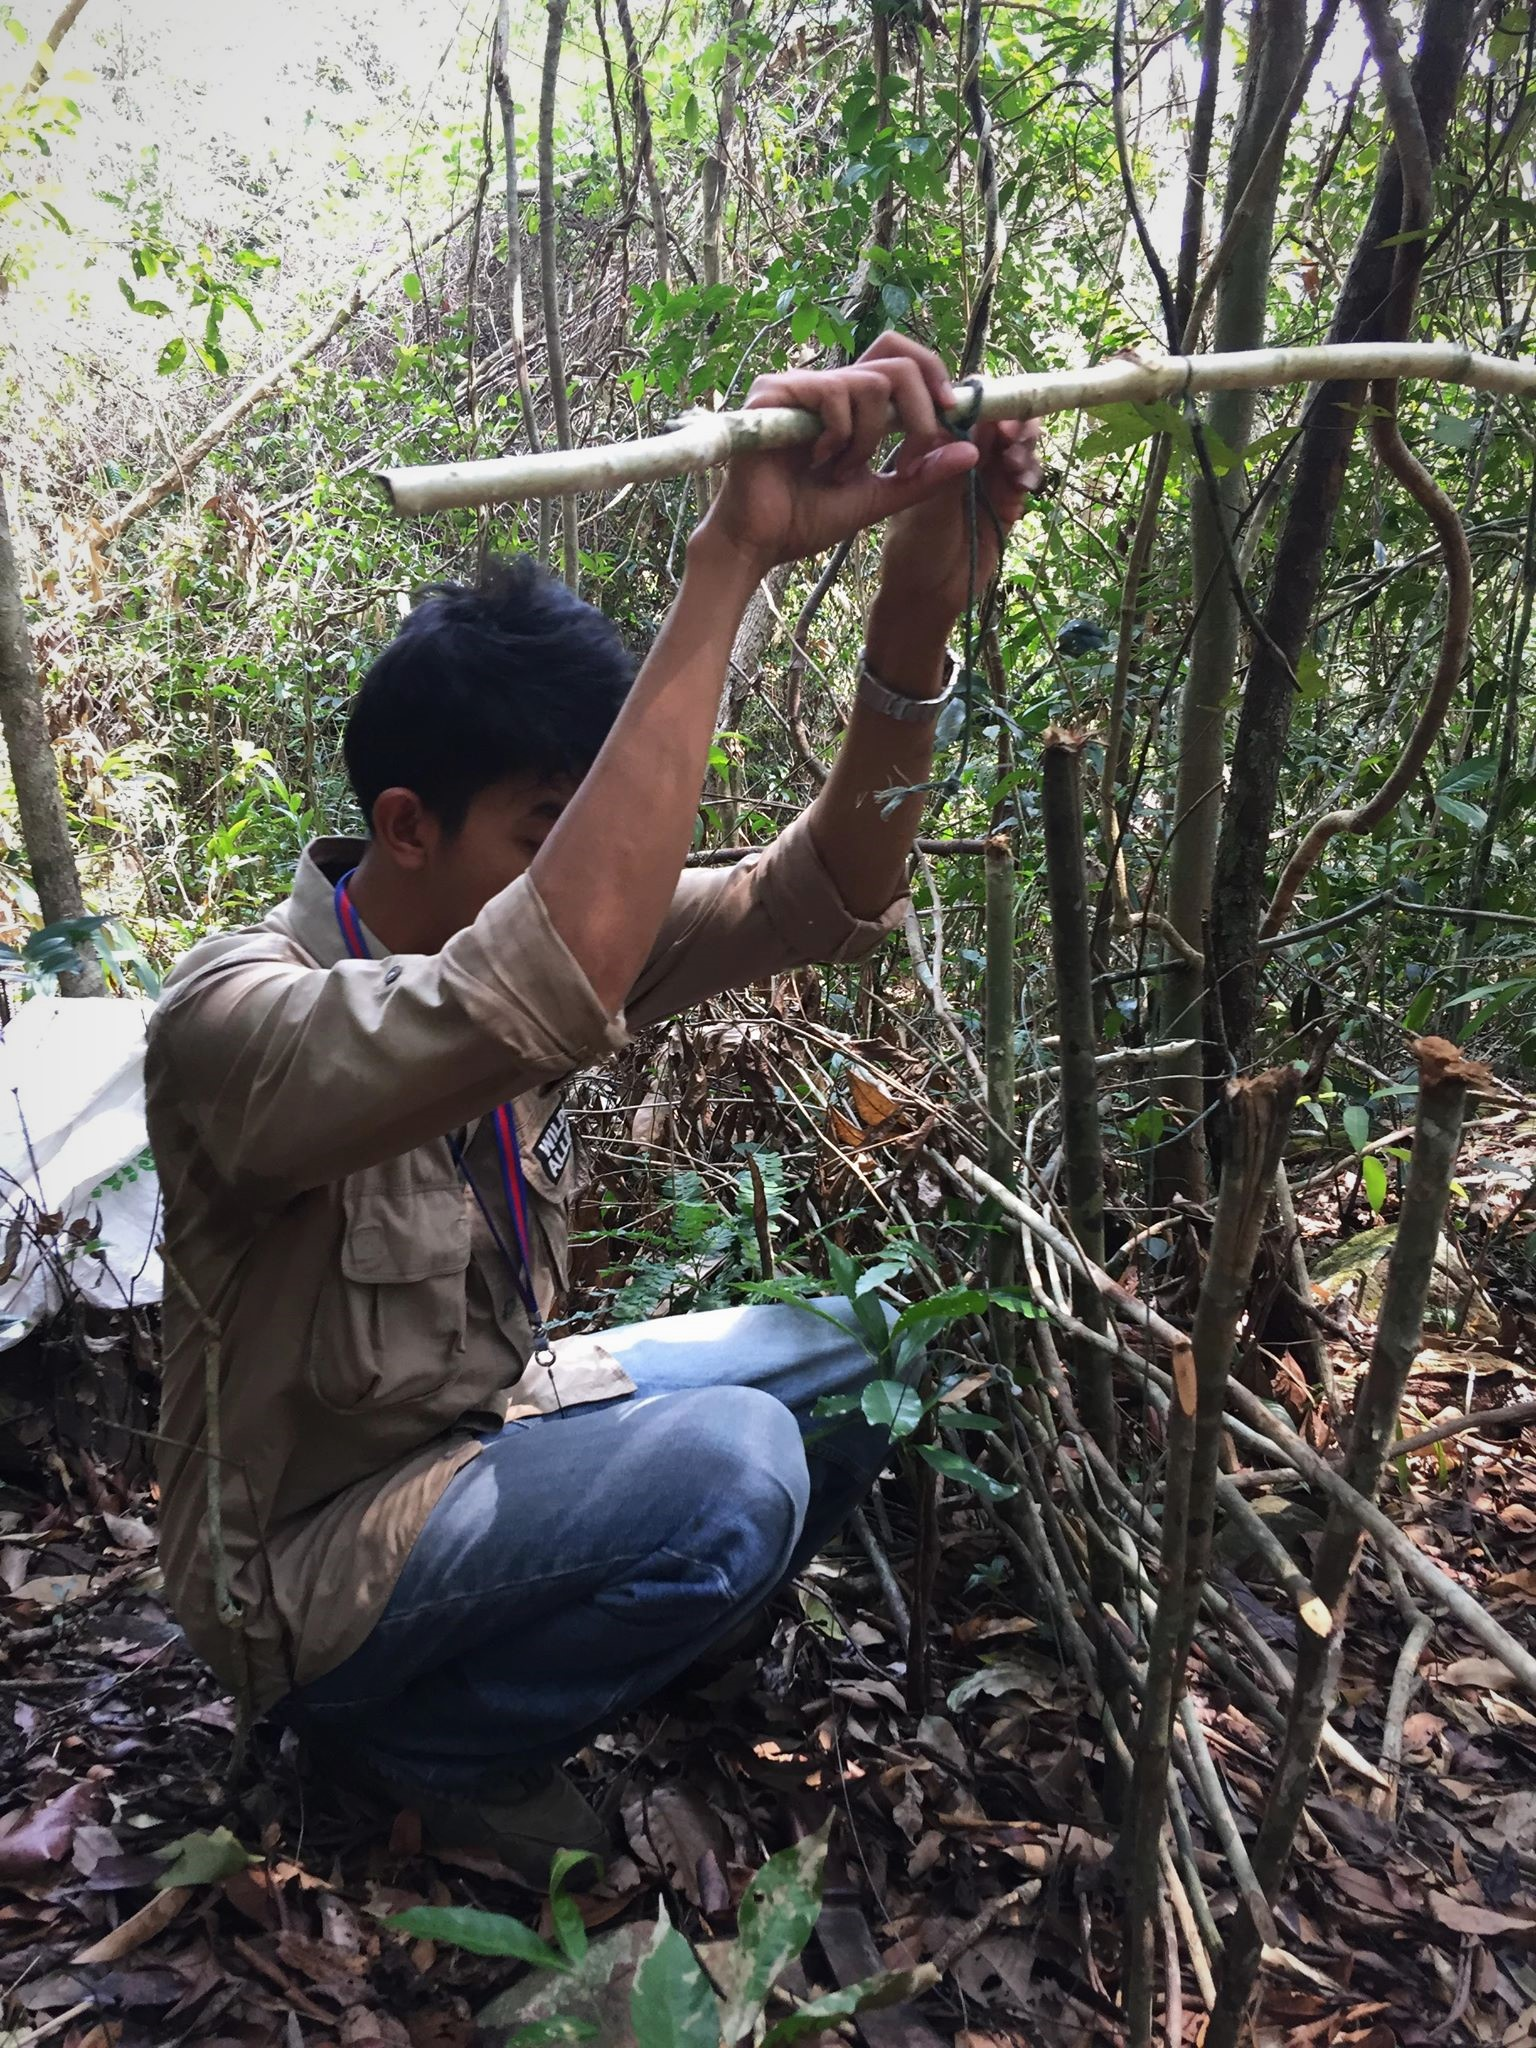 ban snares Call for ban of snares – Dhole caught in snares graphic content Wildlife Alliance rangers collecting animal wild traps